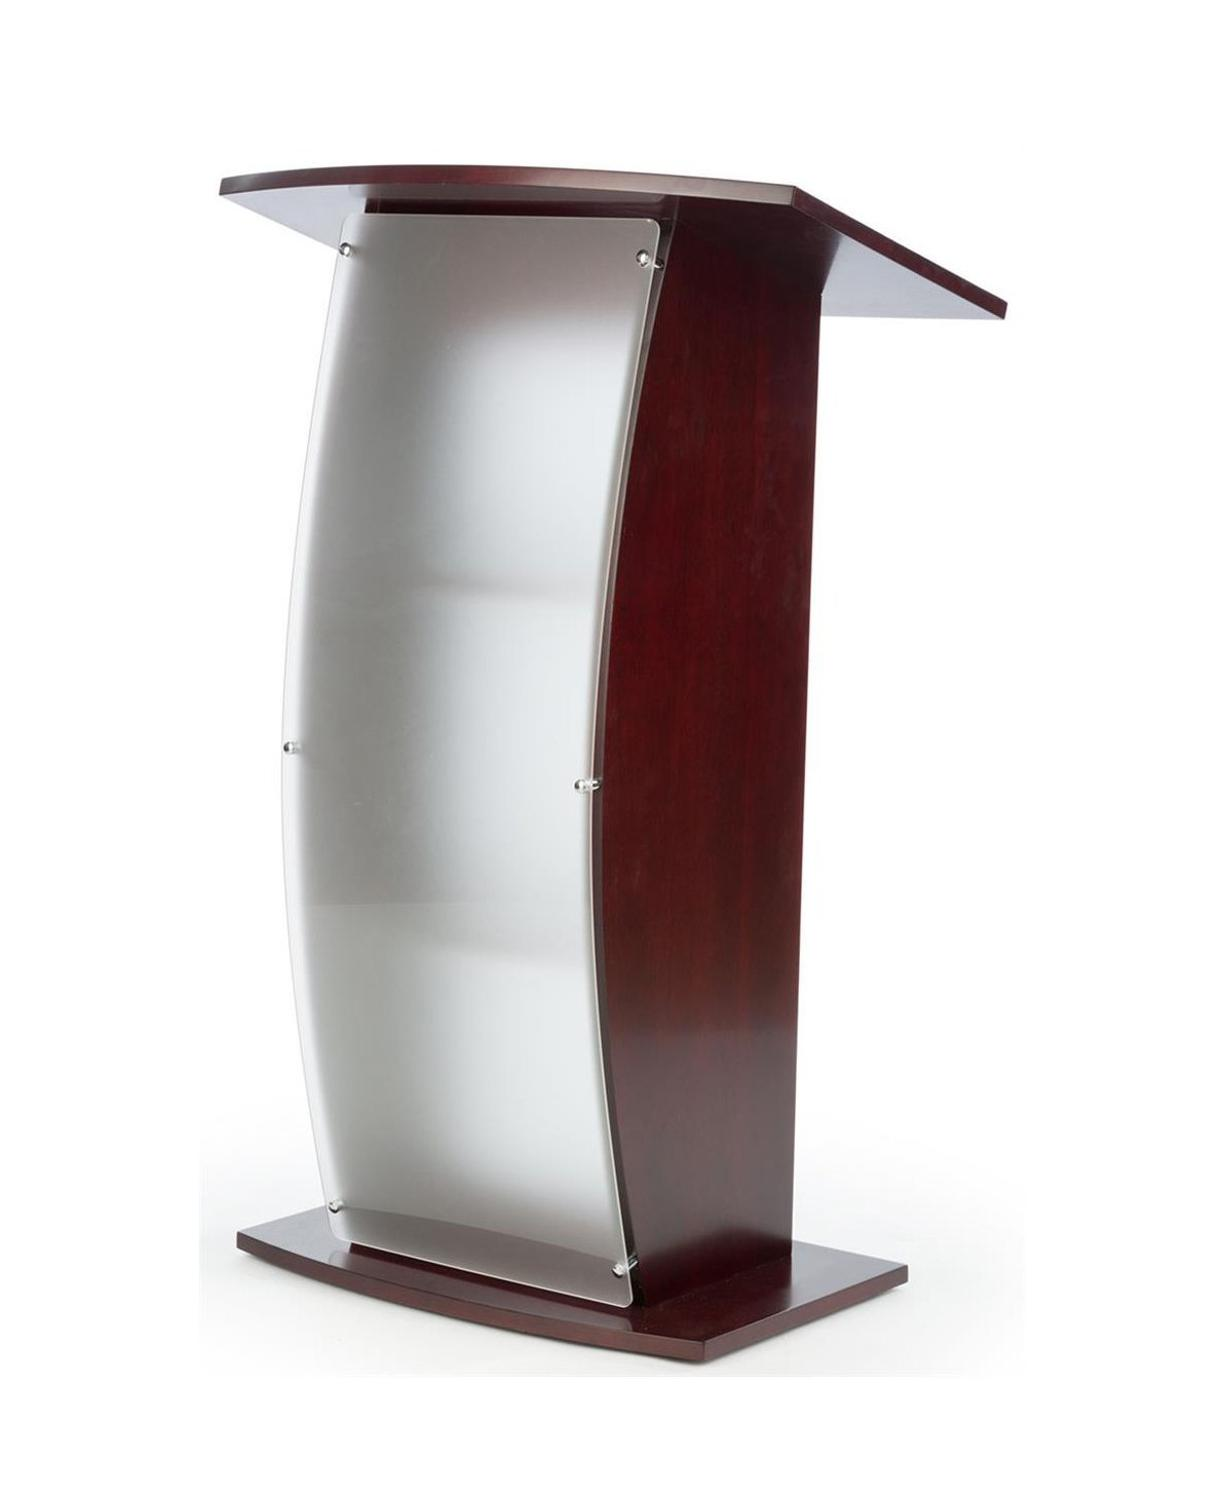 """Fixture Displays 44.25"""" Tall Podium for Floor  Curved Frosted Front Acrylic Panel   Red Mahogany